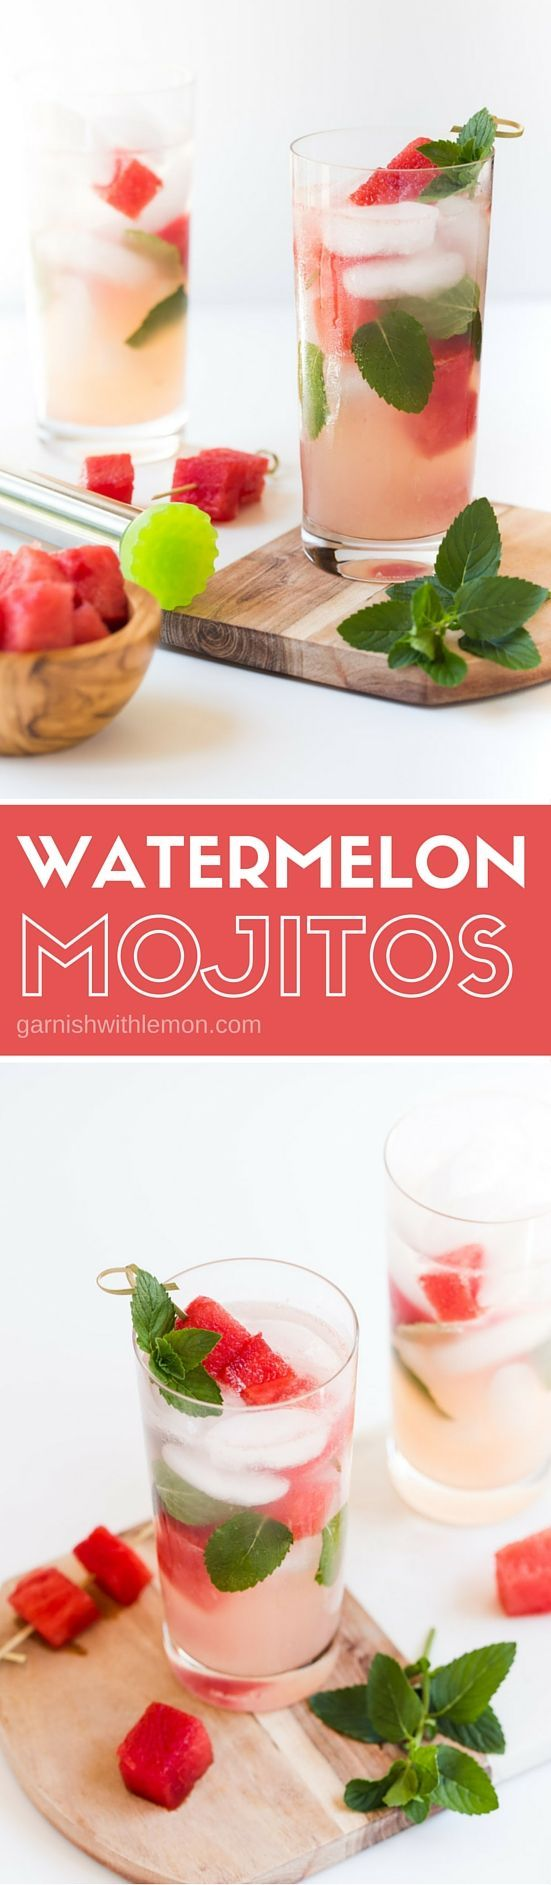 Juicy watermelon adds a refreshing twist to this quick and easy Watermelon Mojito recipe - an easy way to beat the summer heat!